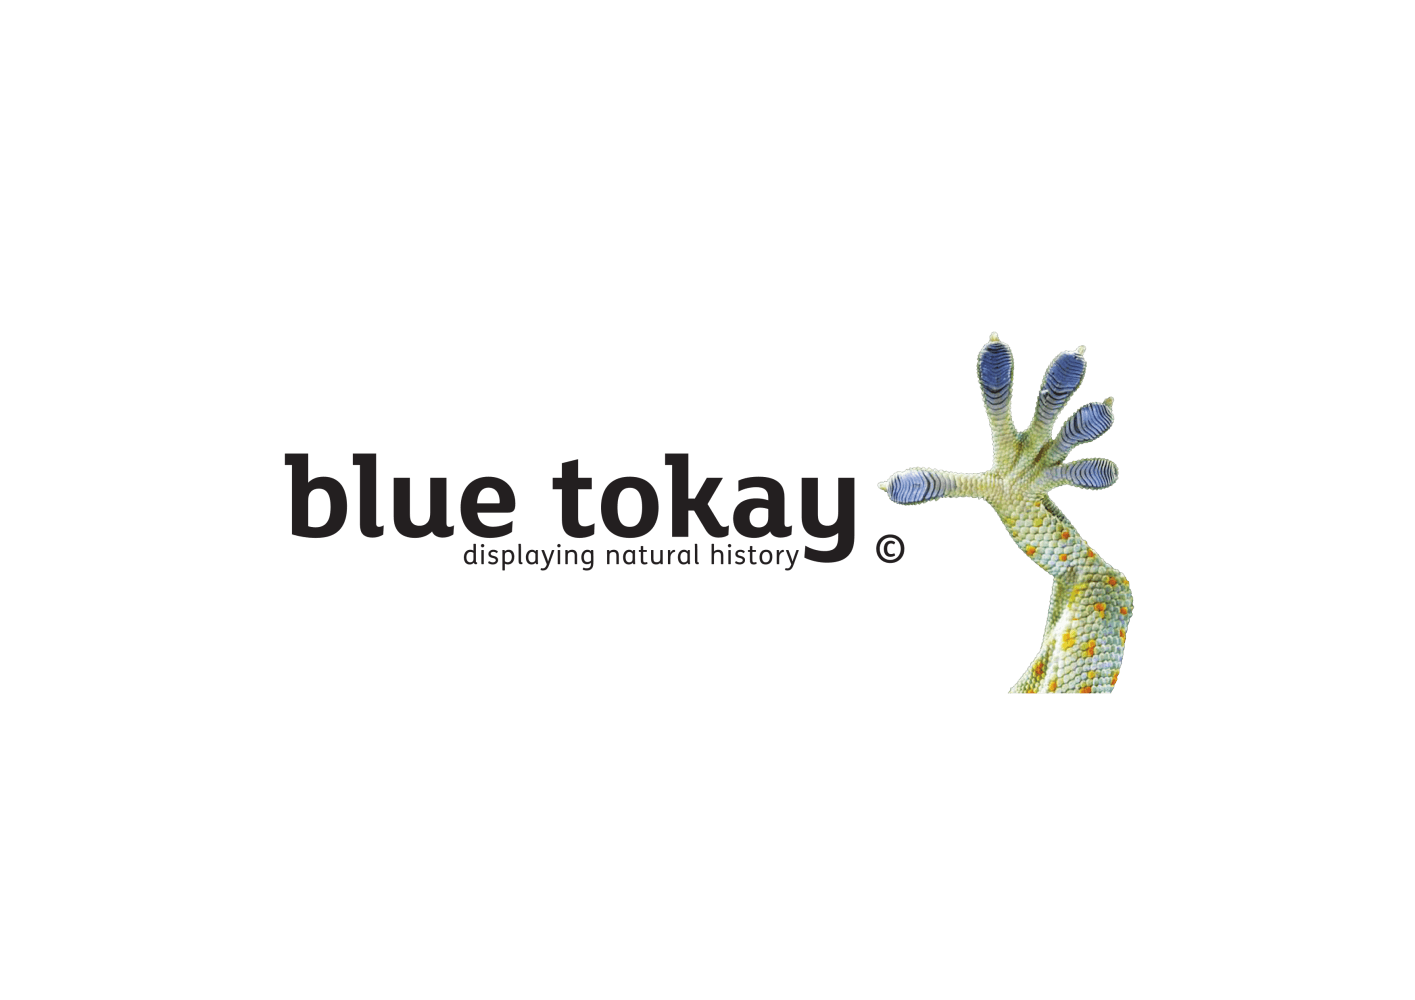 Blue Tokay Ltd